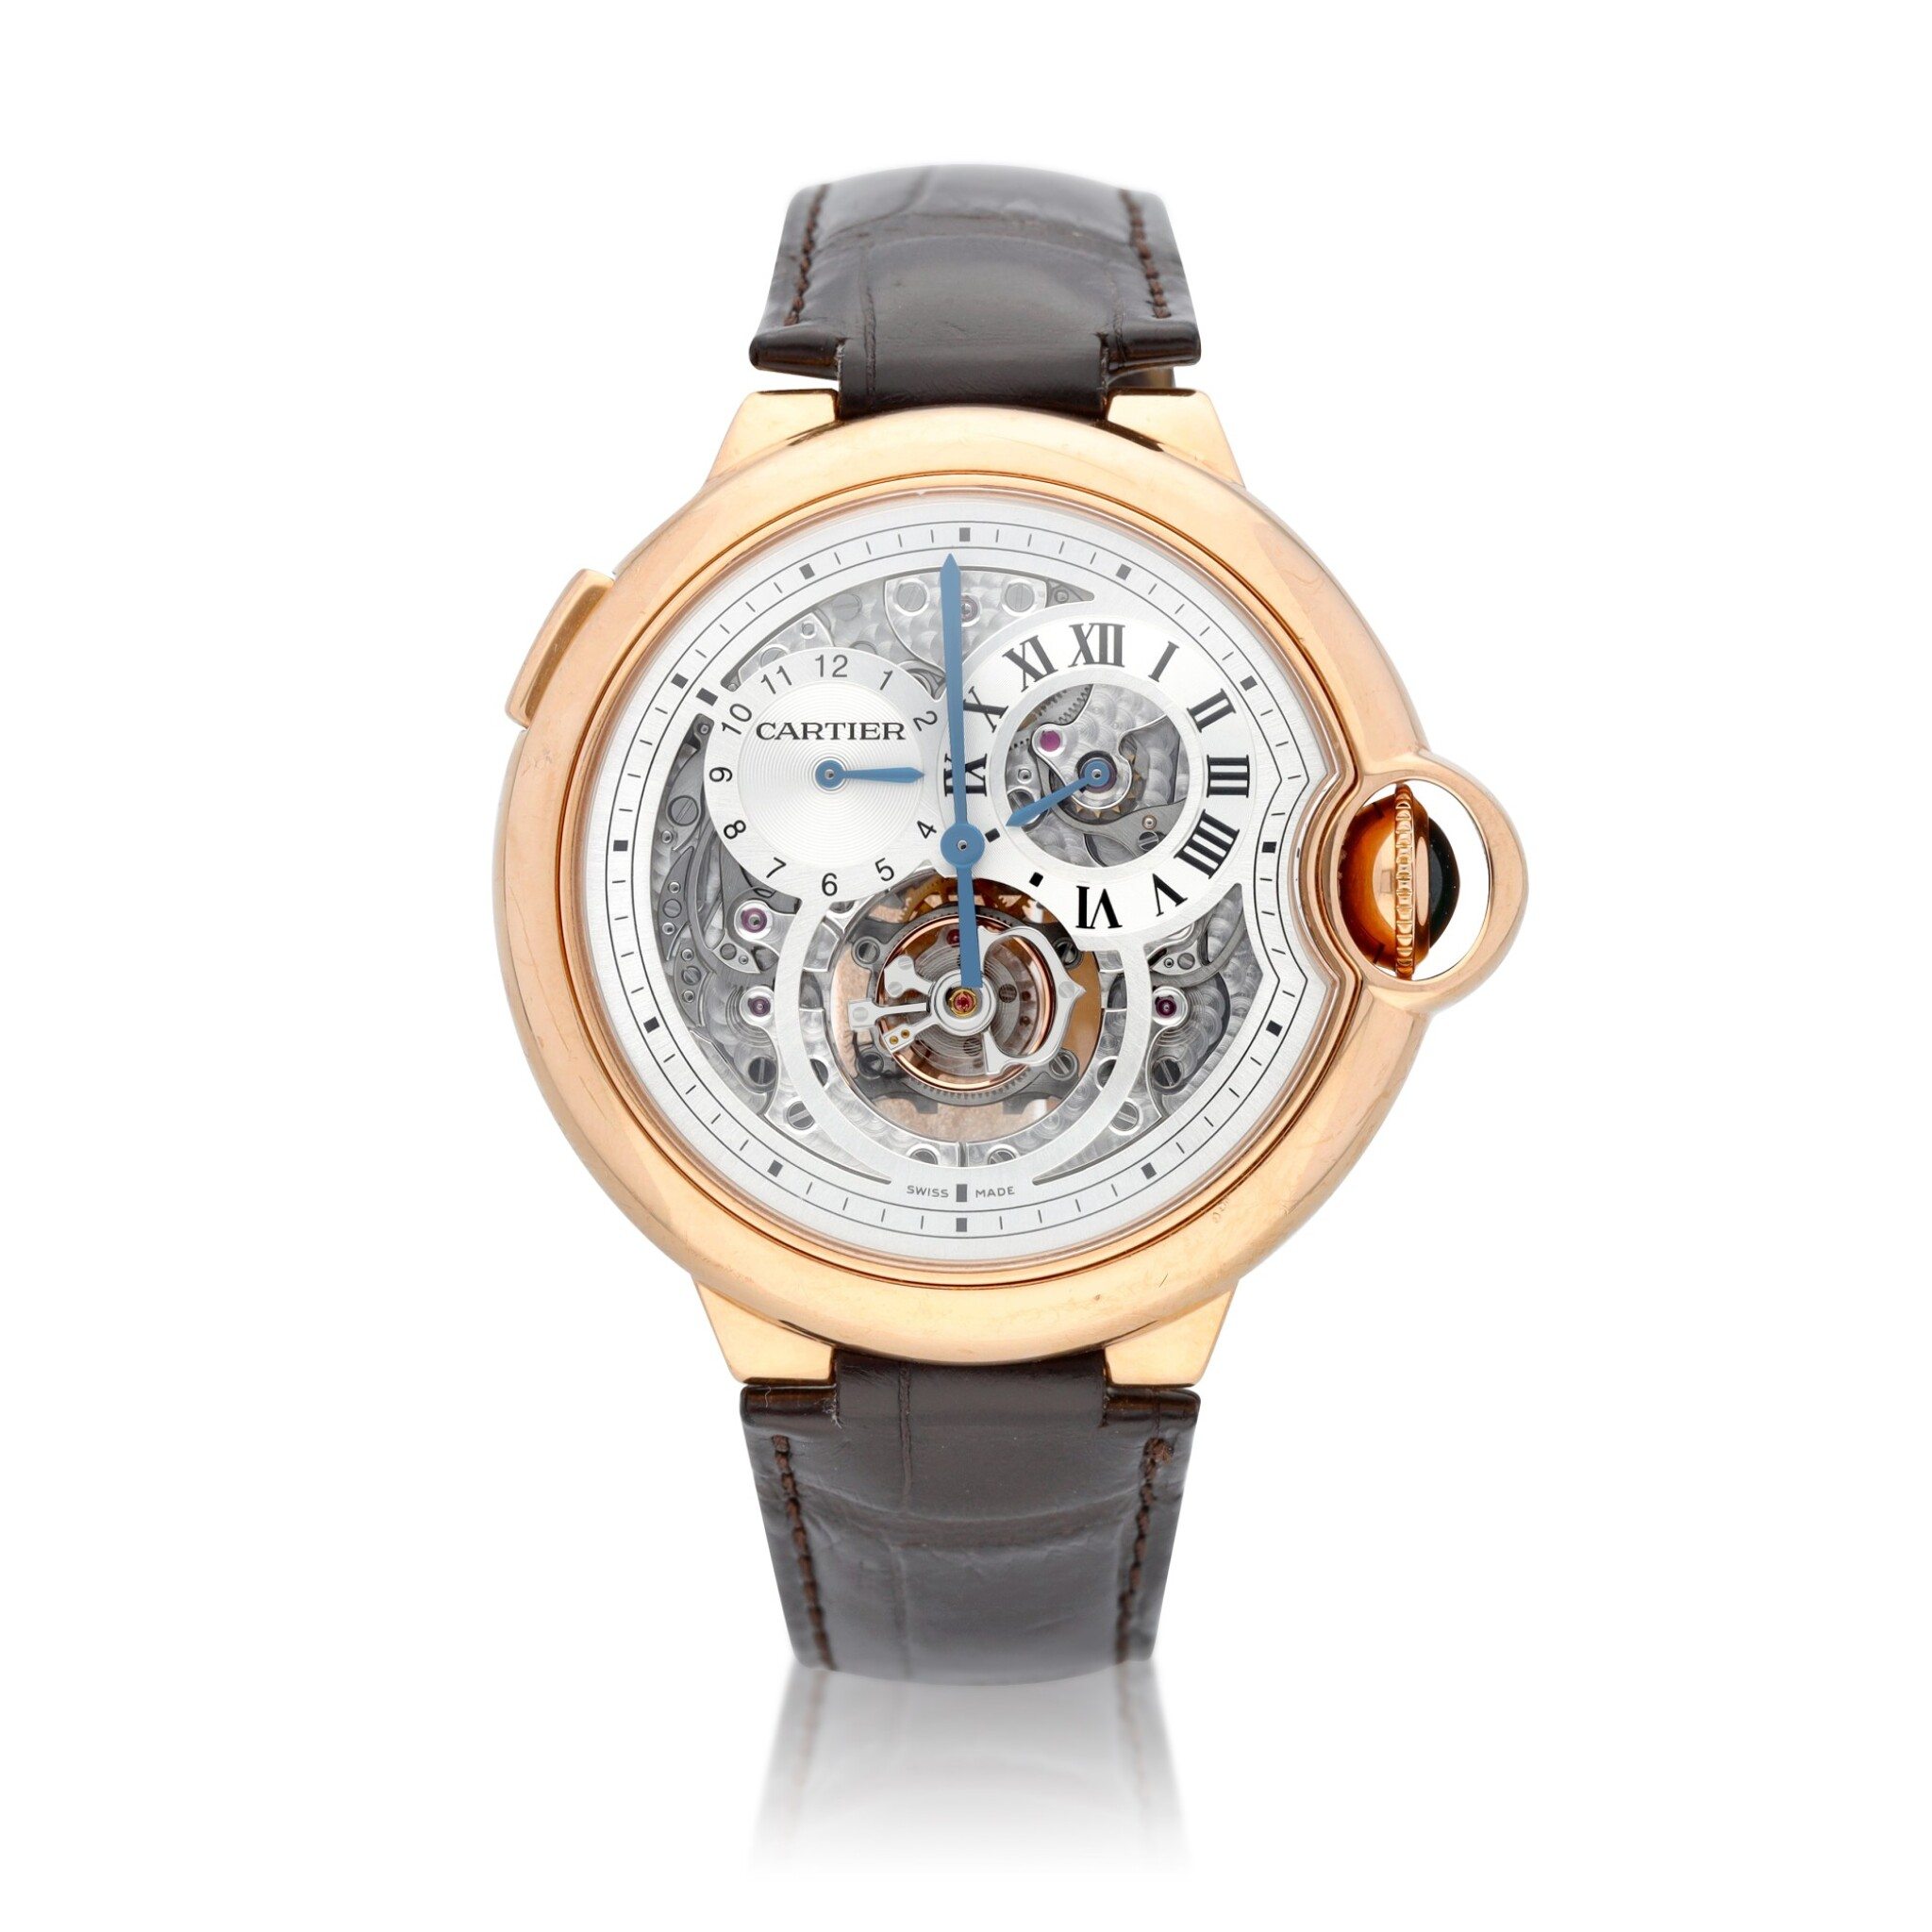 View full screen - View 1 of Lot 13. Ballon Bleu, Ref. 3326 Limited edition pink gold tourbillon wristwatch with dual time indication Circa 2009.